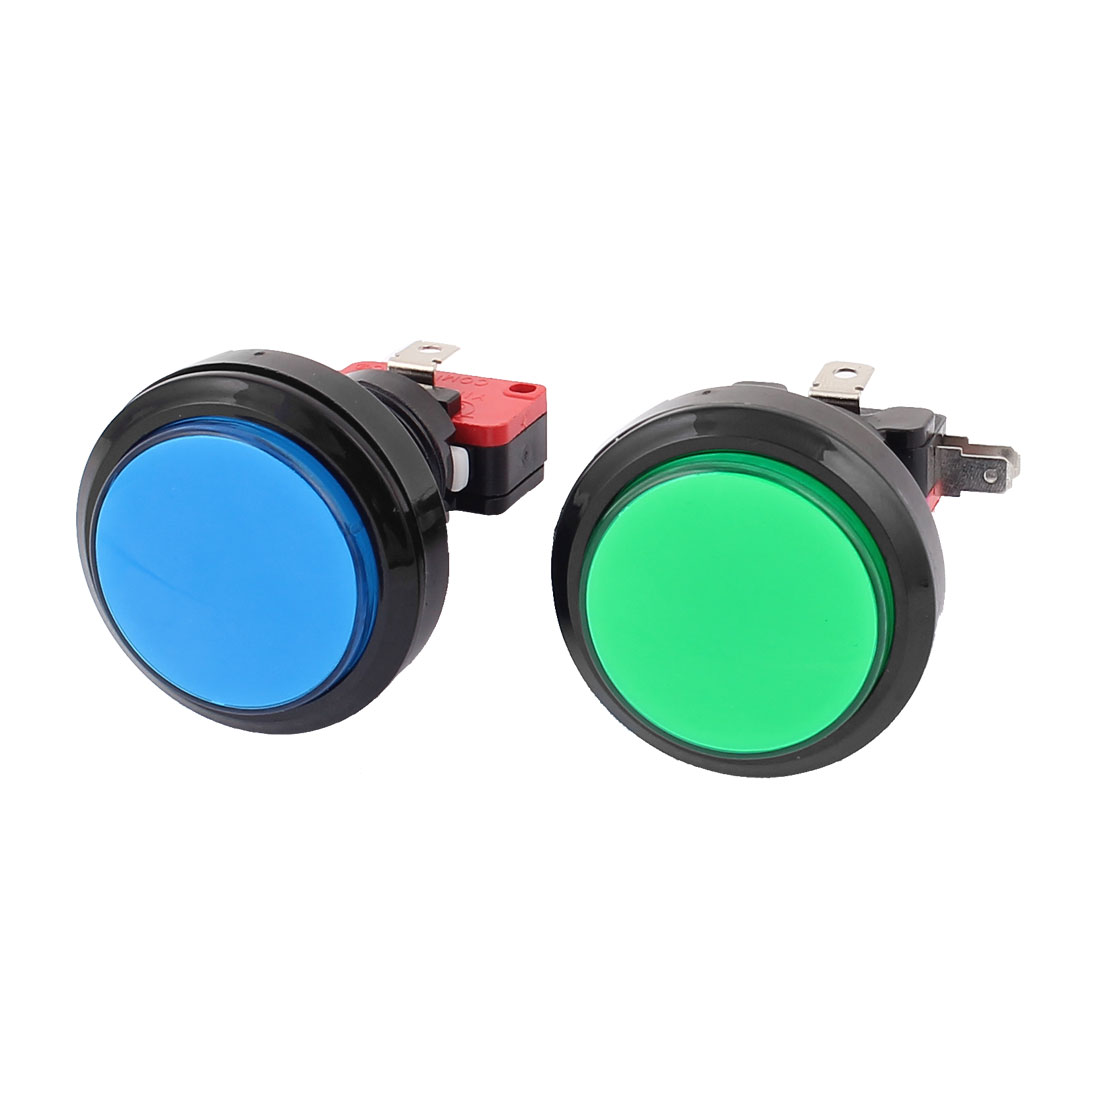 23mm Dia Thread Panel Mounting Spring Load Arcade Game Machine Push Button Switch 2Pcs